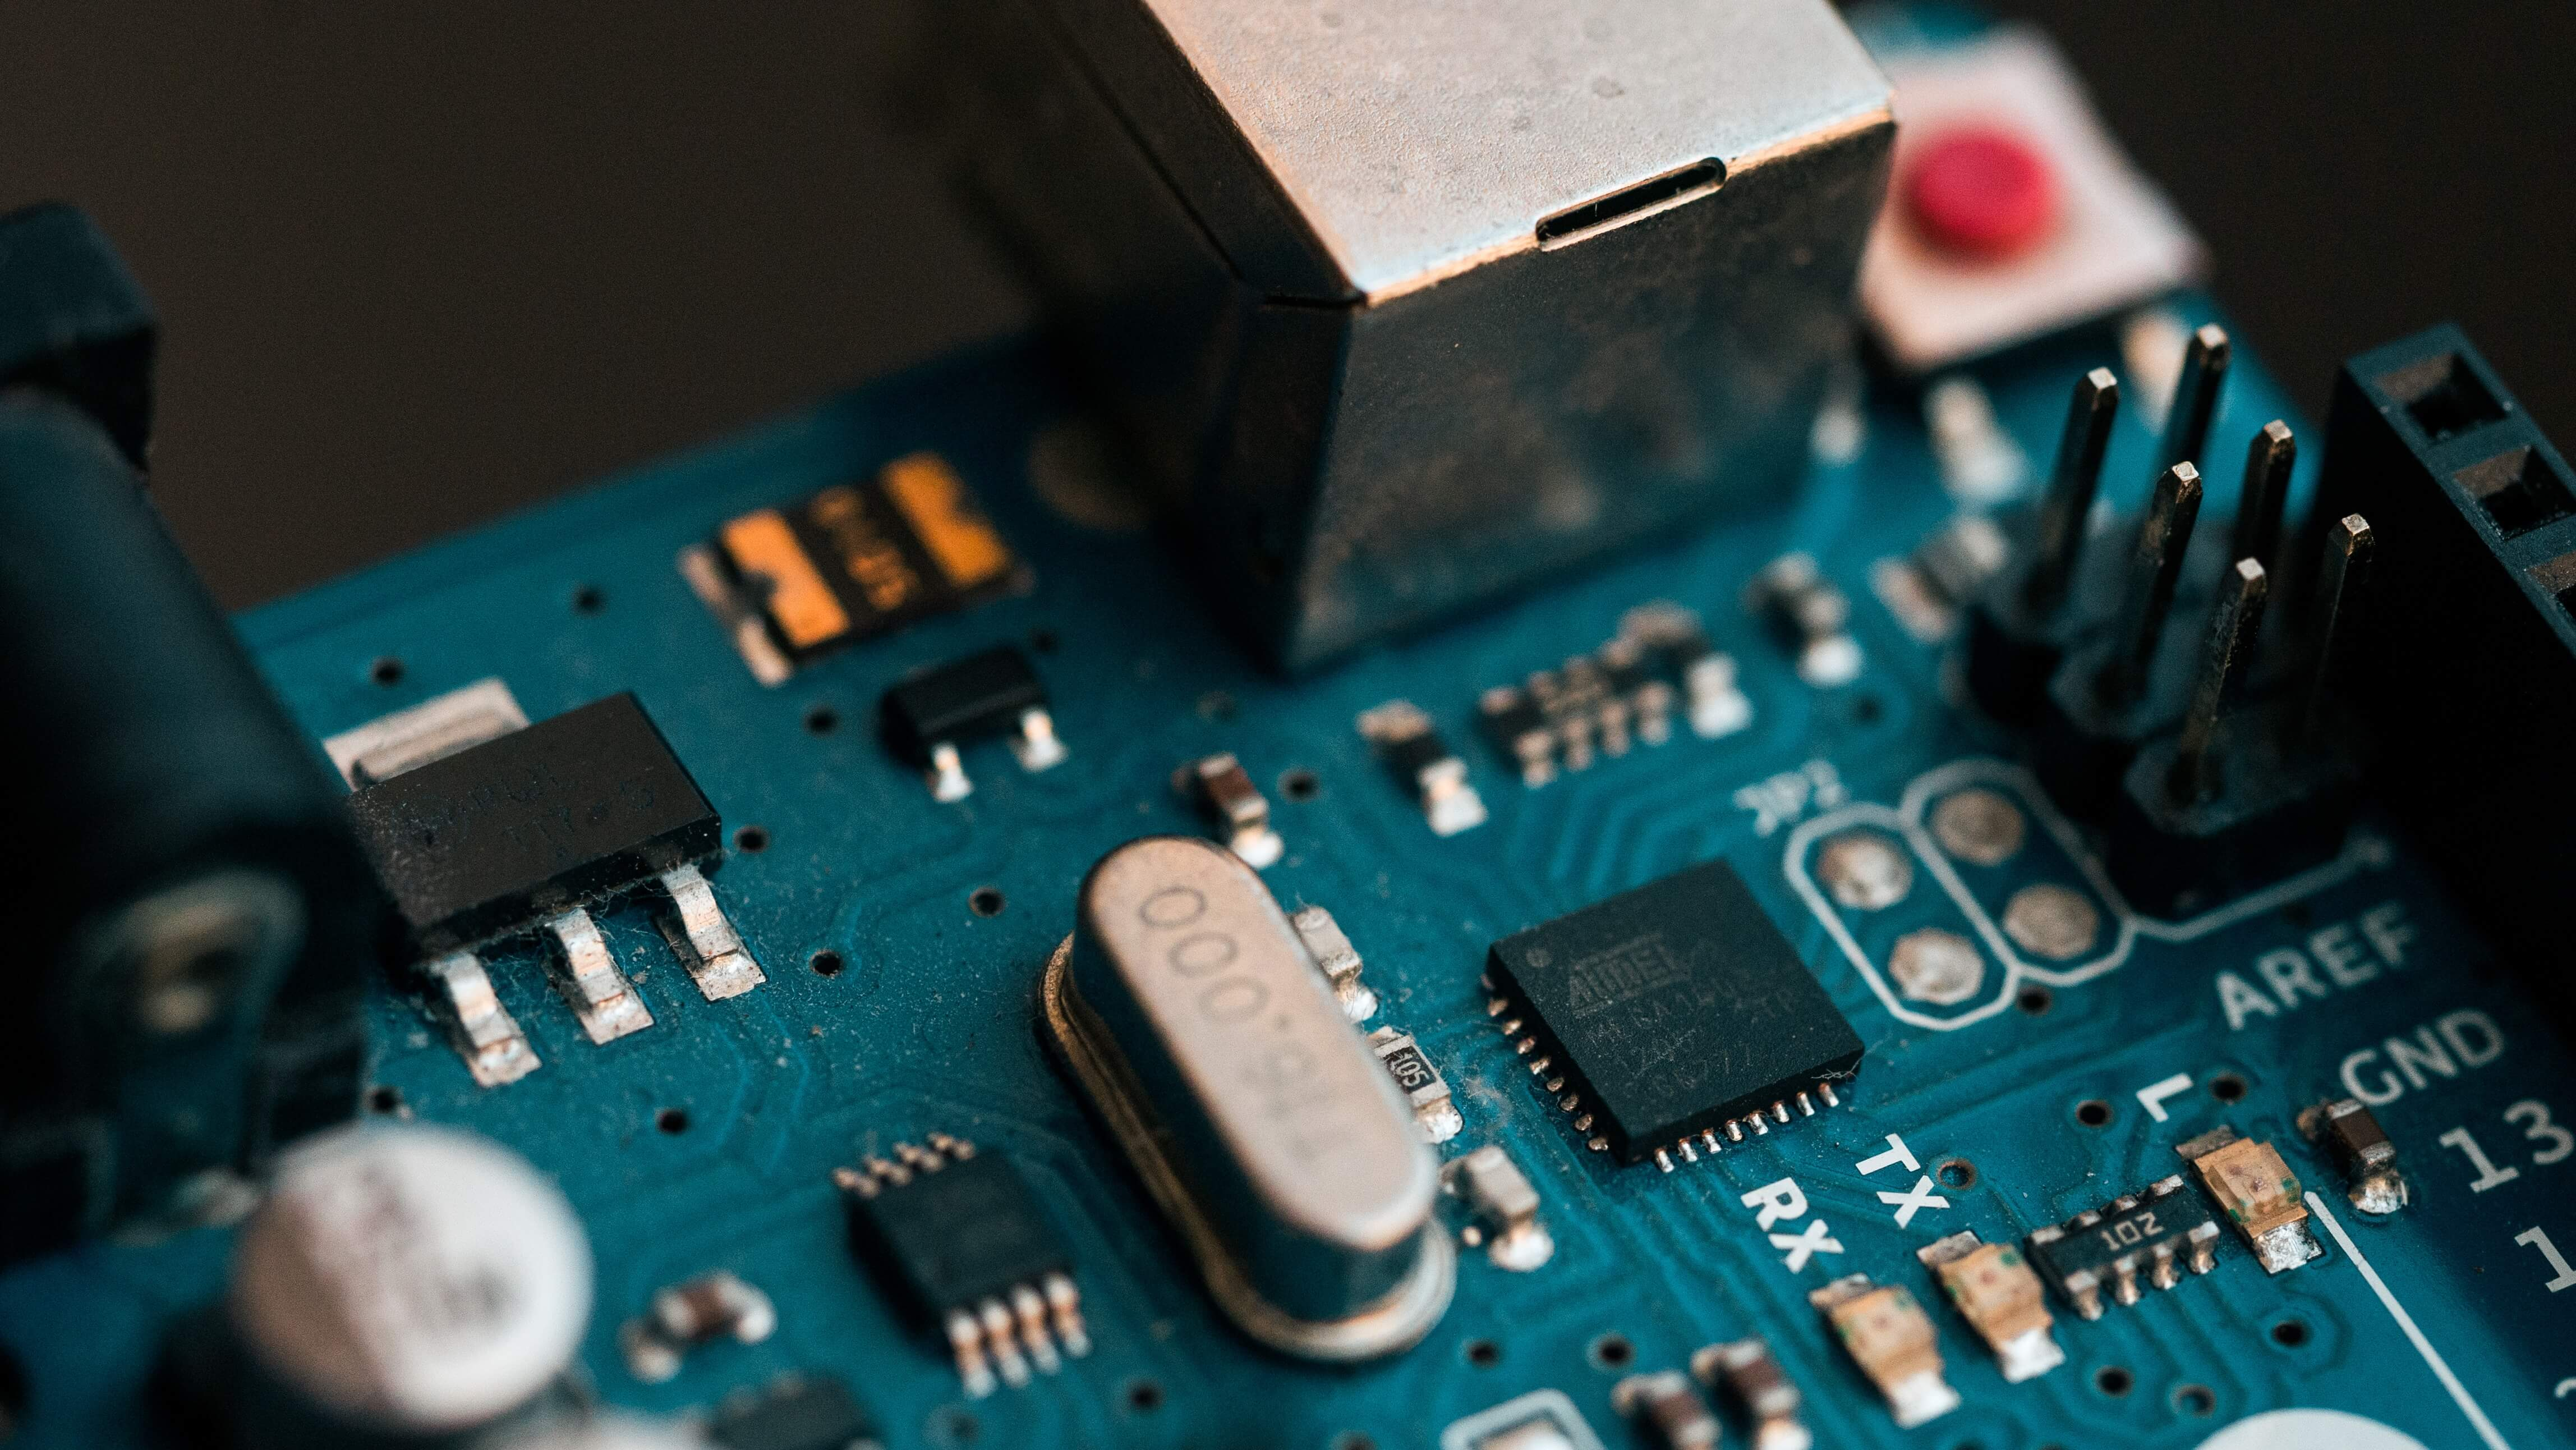 Don't ignore how to identify electronic components